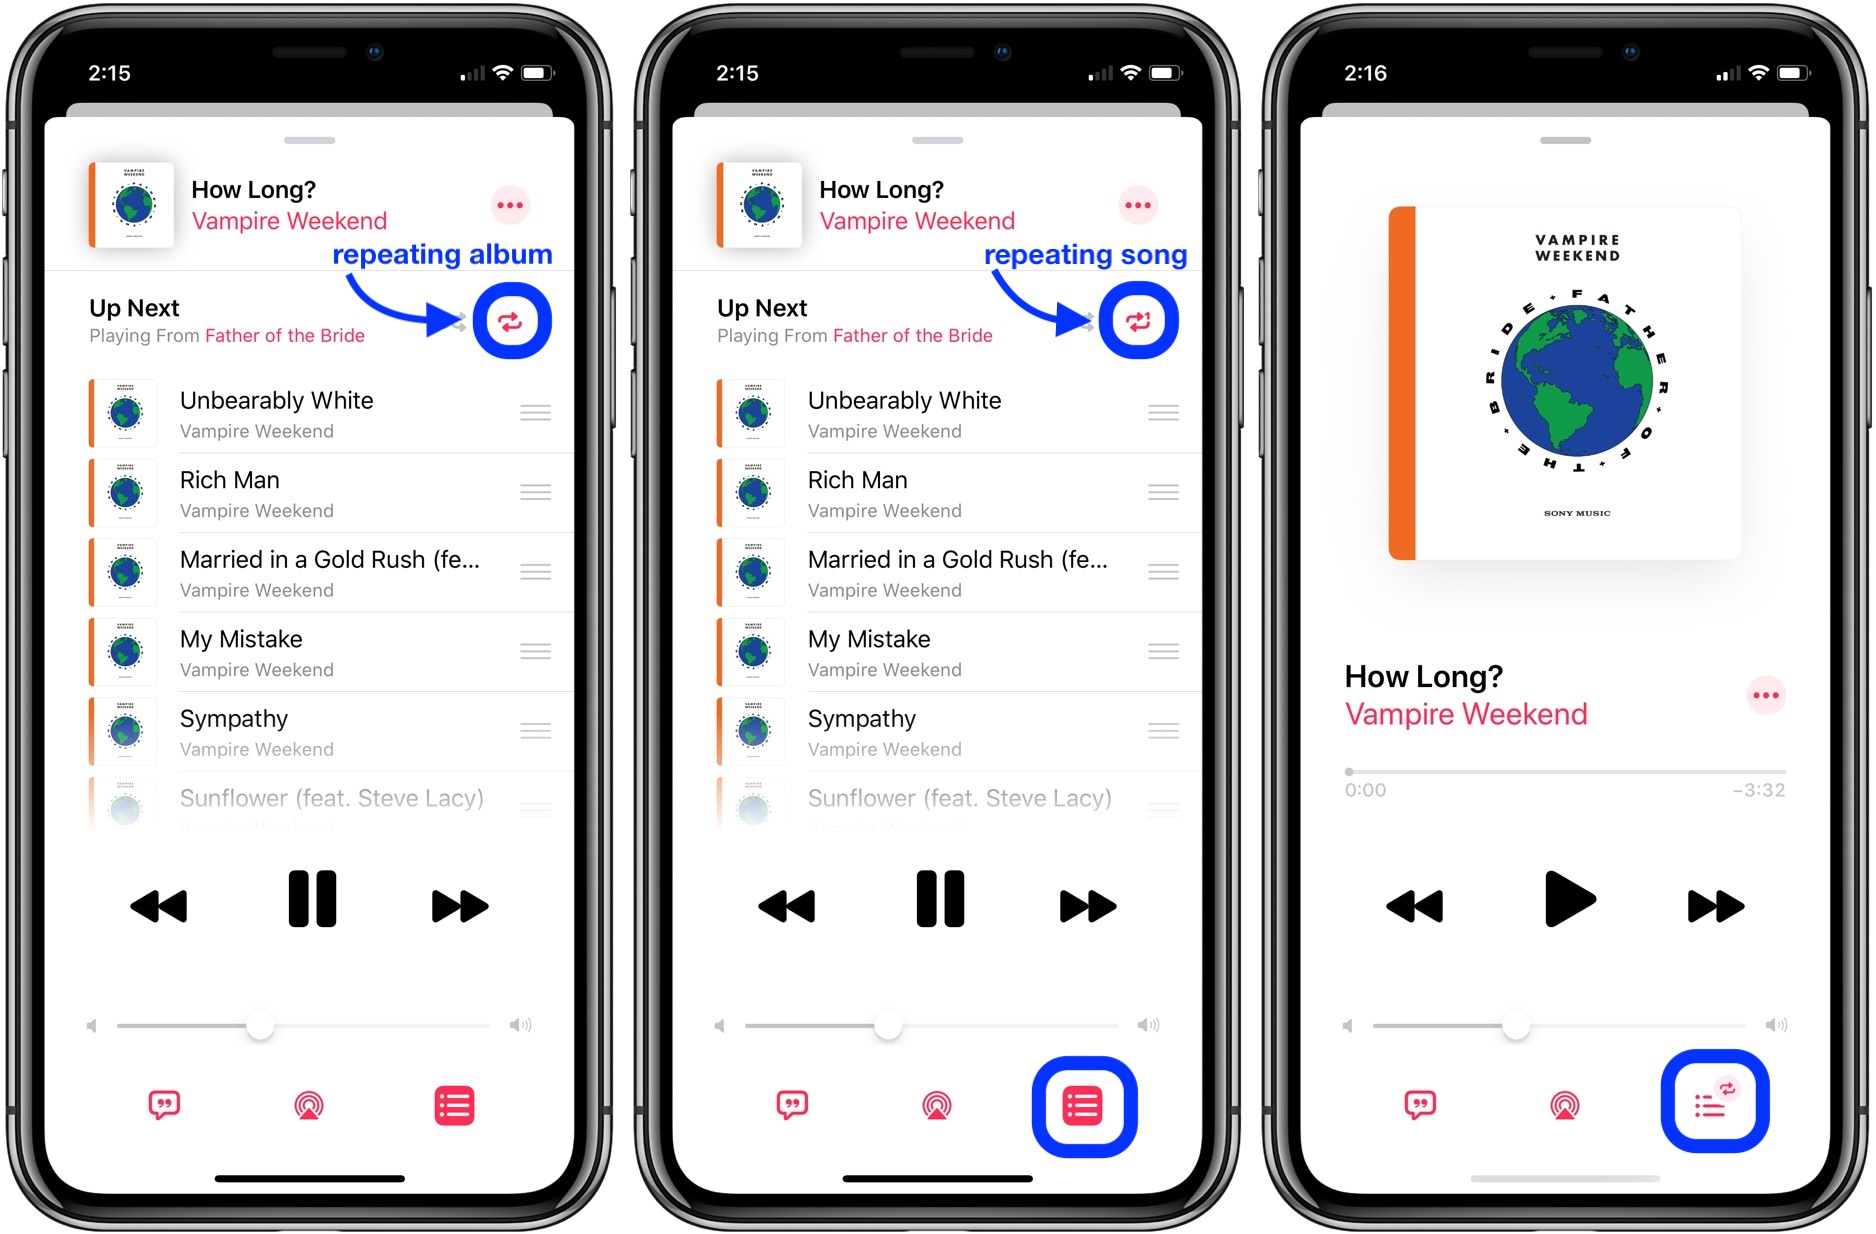 How to repeat song or album iOS 13 iPhone iPad walkthrough 2